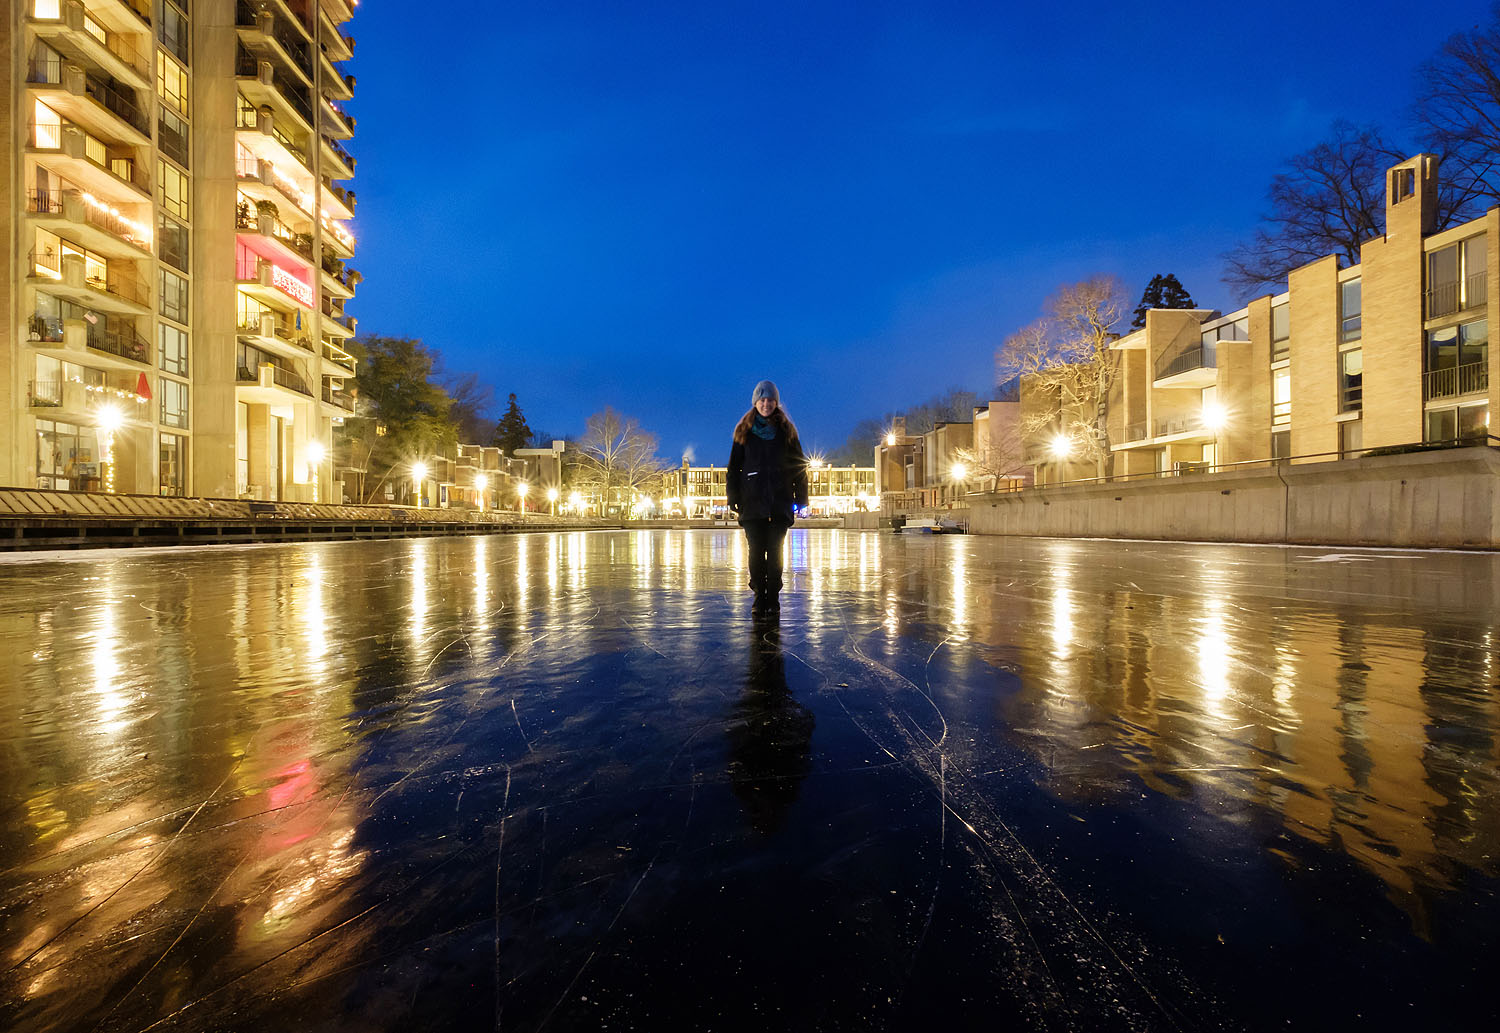 Lake Anne Plaza covered in ice